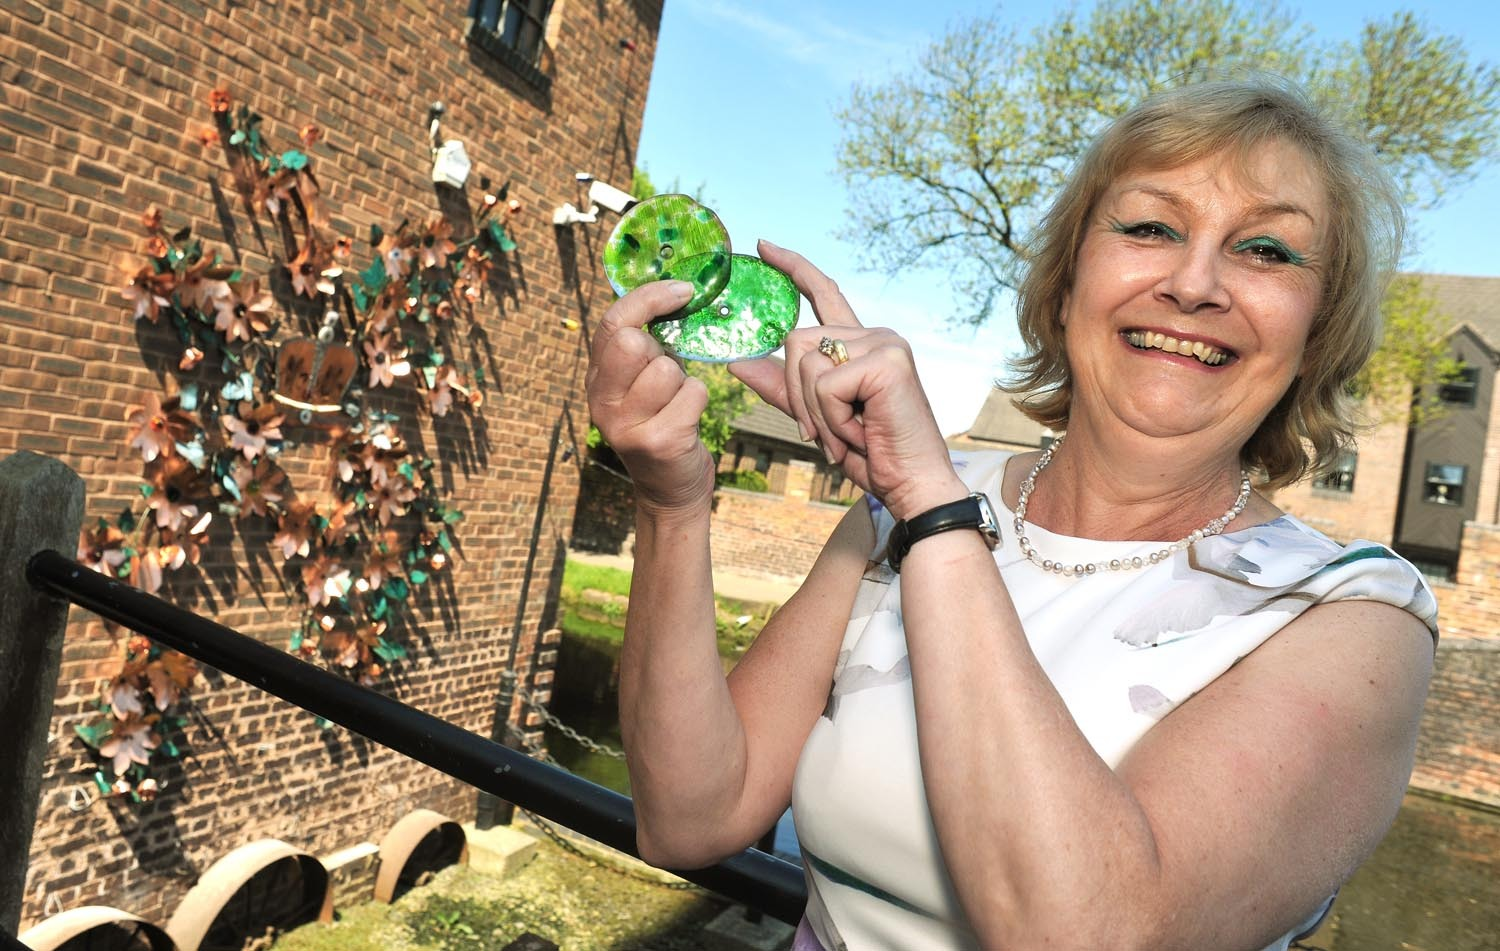 Artist Michele Gulliver's buddleia vine which has donned the side of the Red House Glass Cone is getting a revamp.